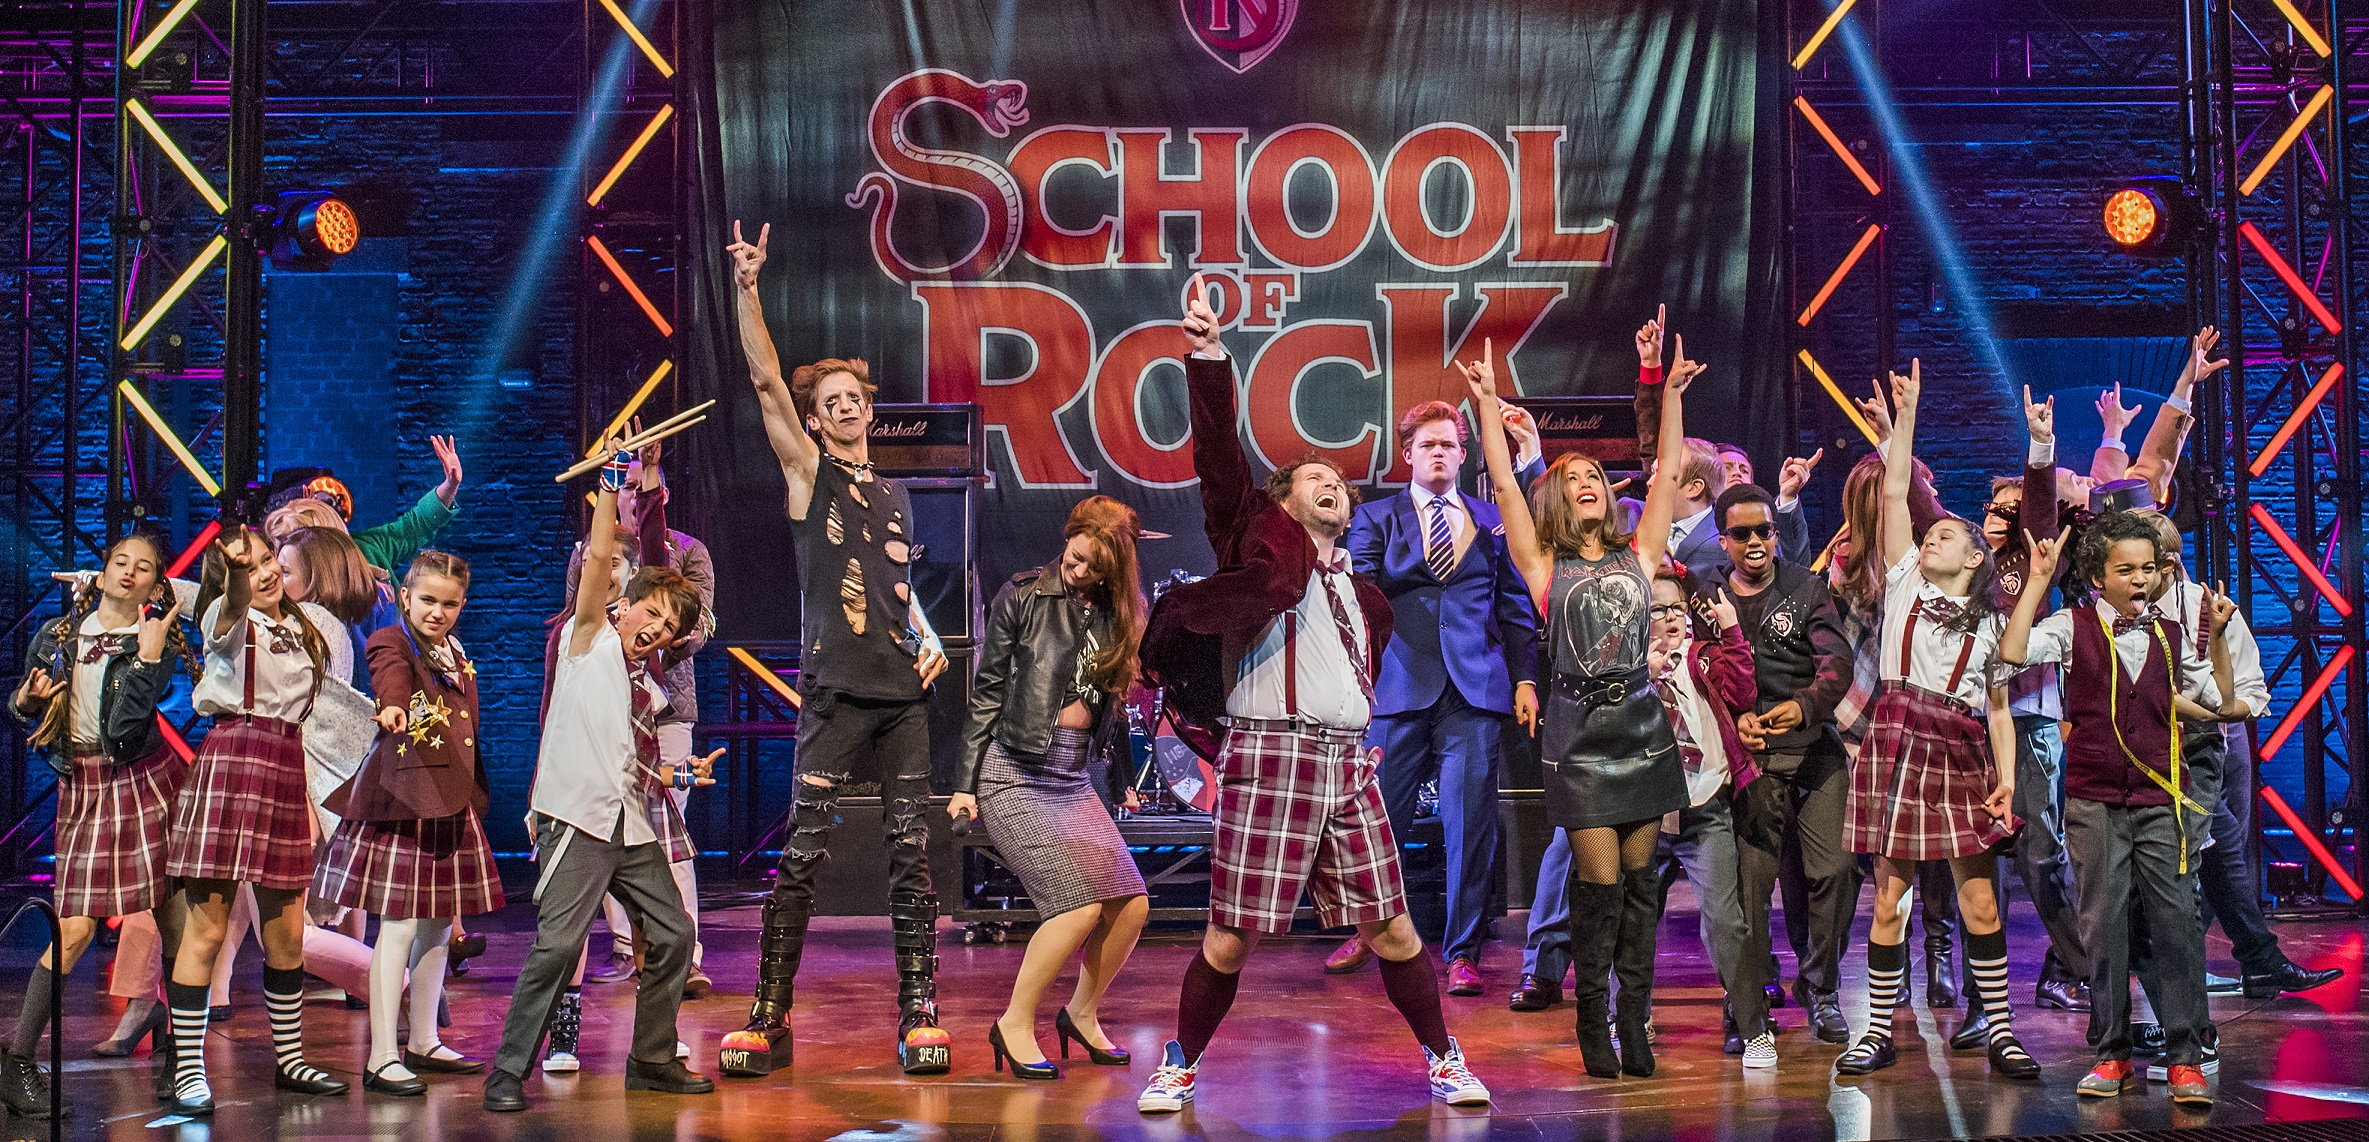 The Kids Are Alright In A Feel Good School Of Rock The